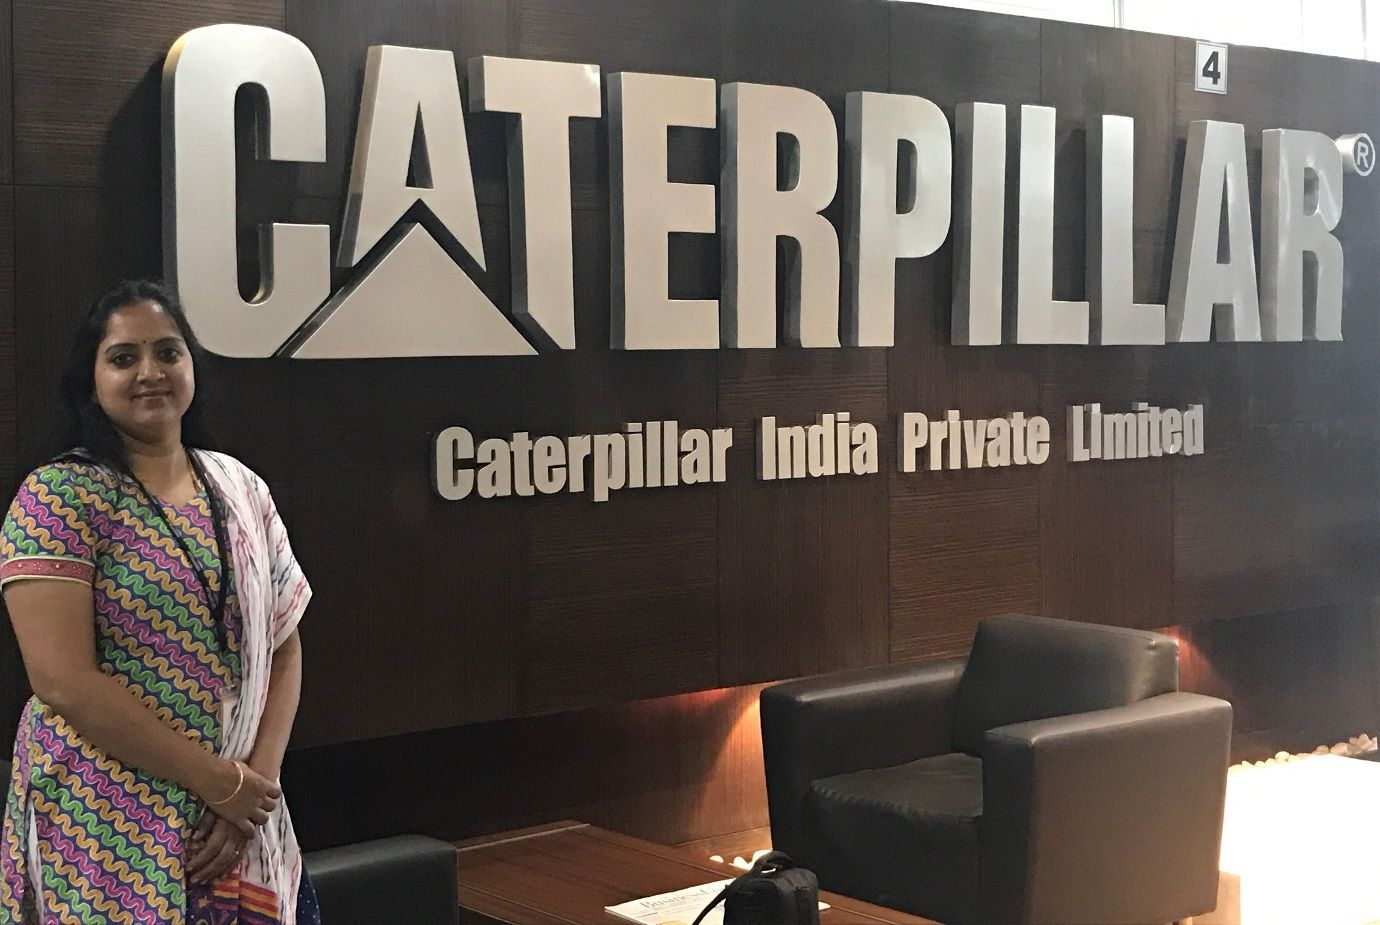 how-she-came-back-to-work-with-caterpillar-after-a-5-year-career-break